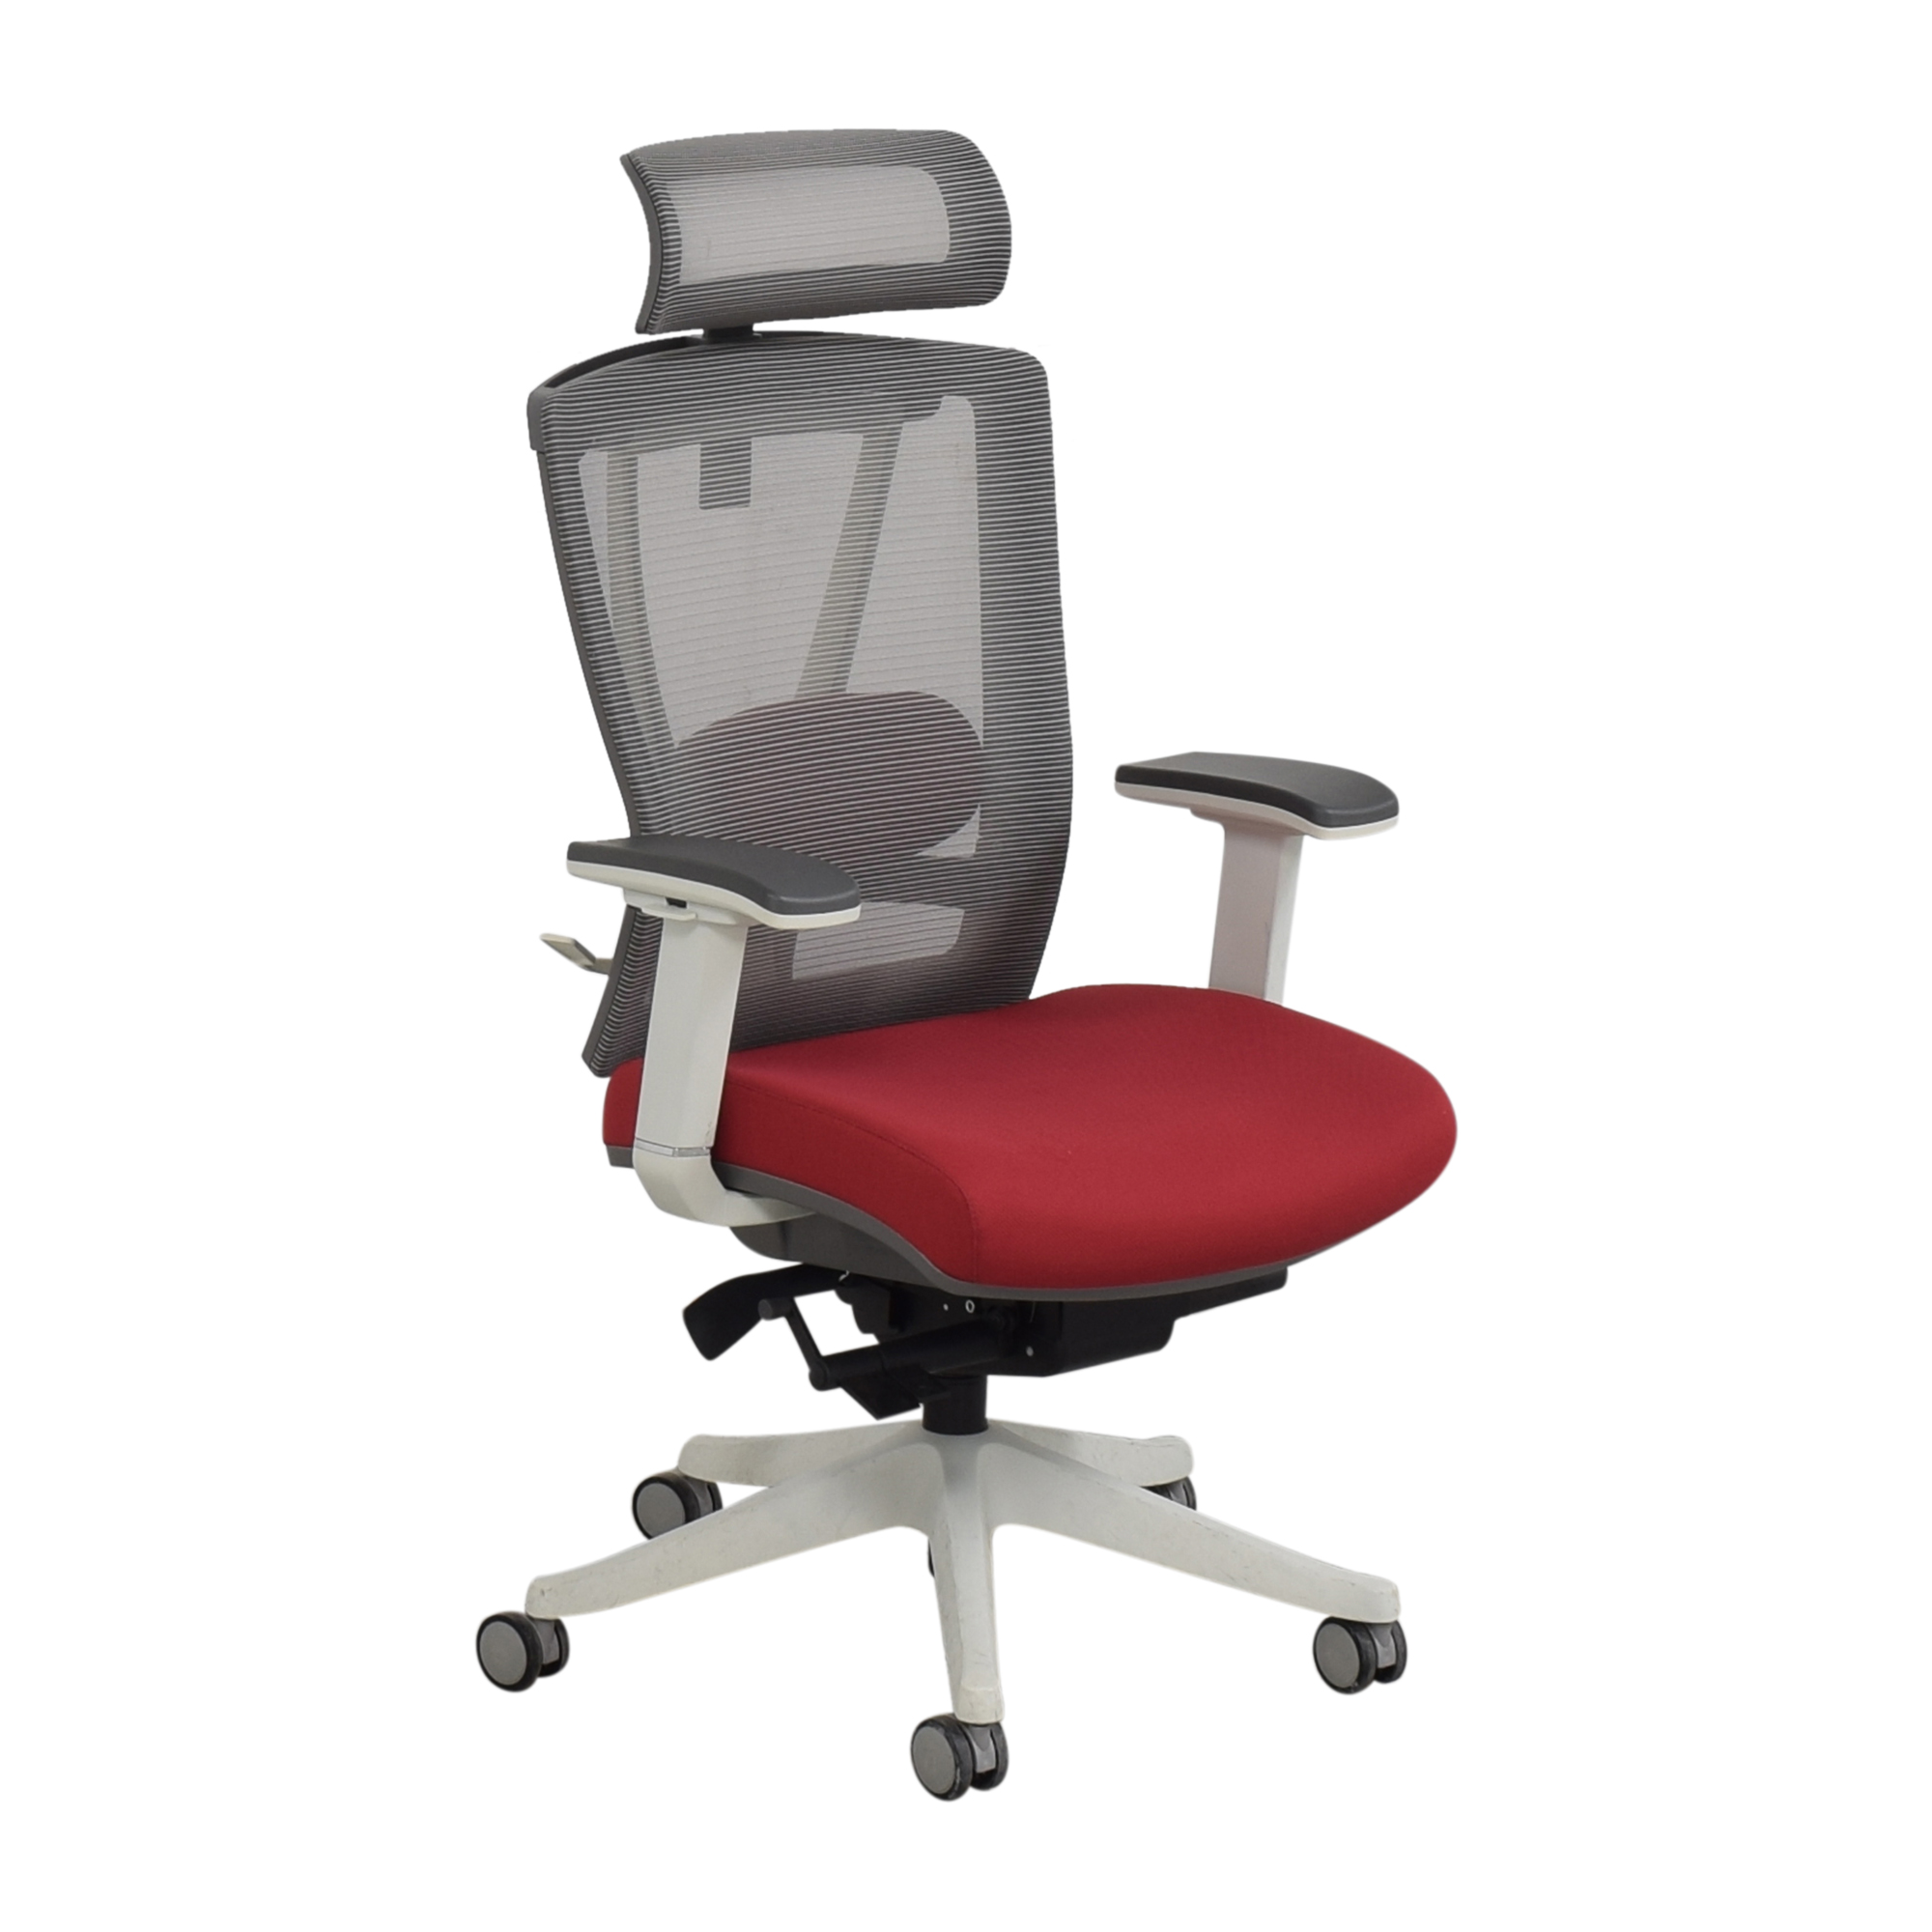 Autonomous Autonomous ErgoChair 2 Office Chair